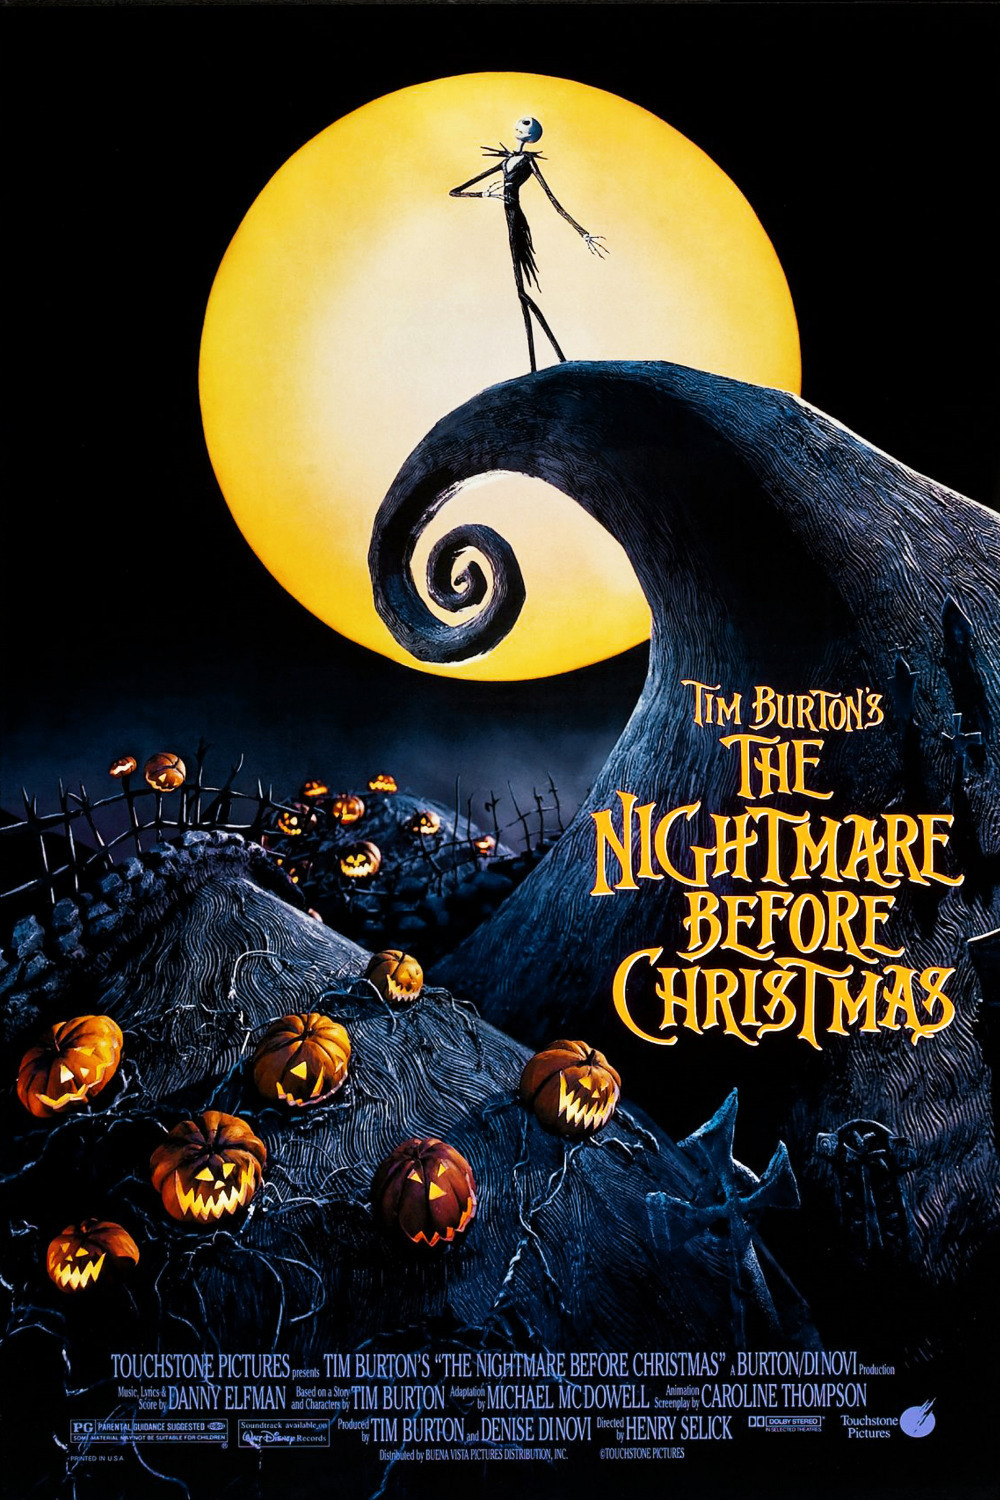 Pildiotsingu the nightmare before christmas tulemus